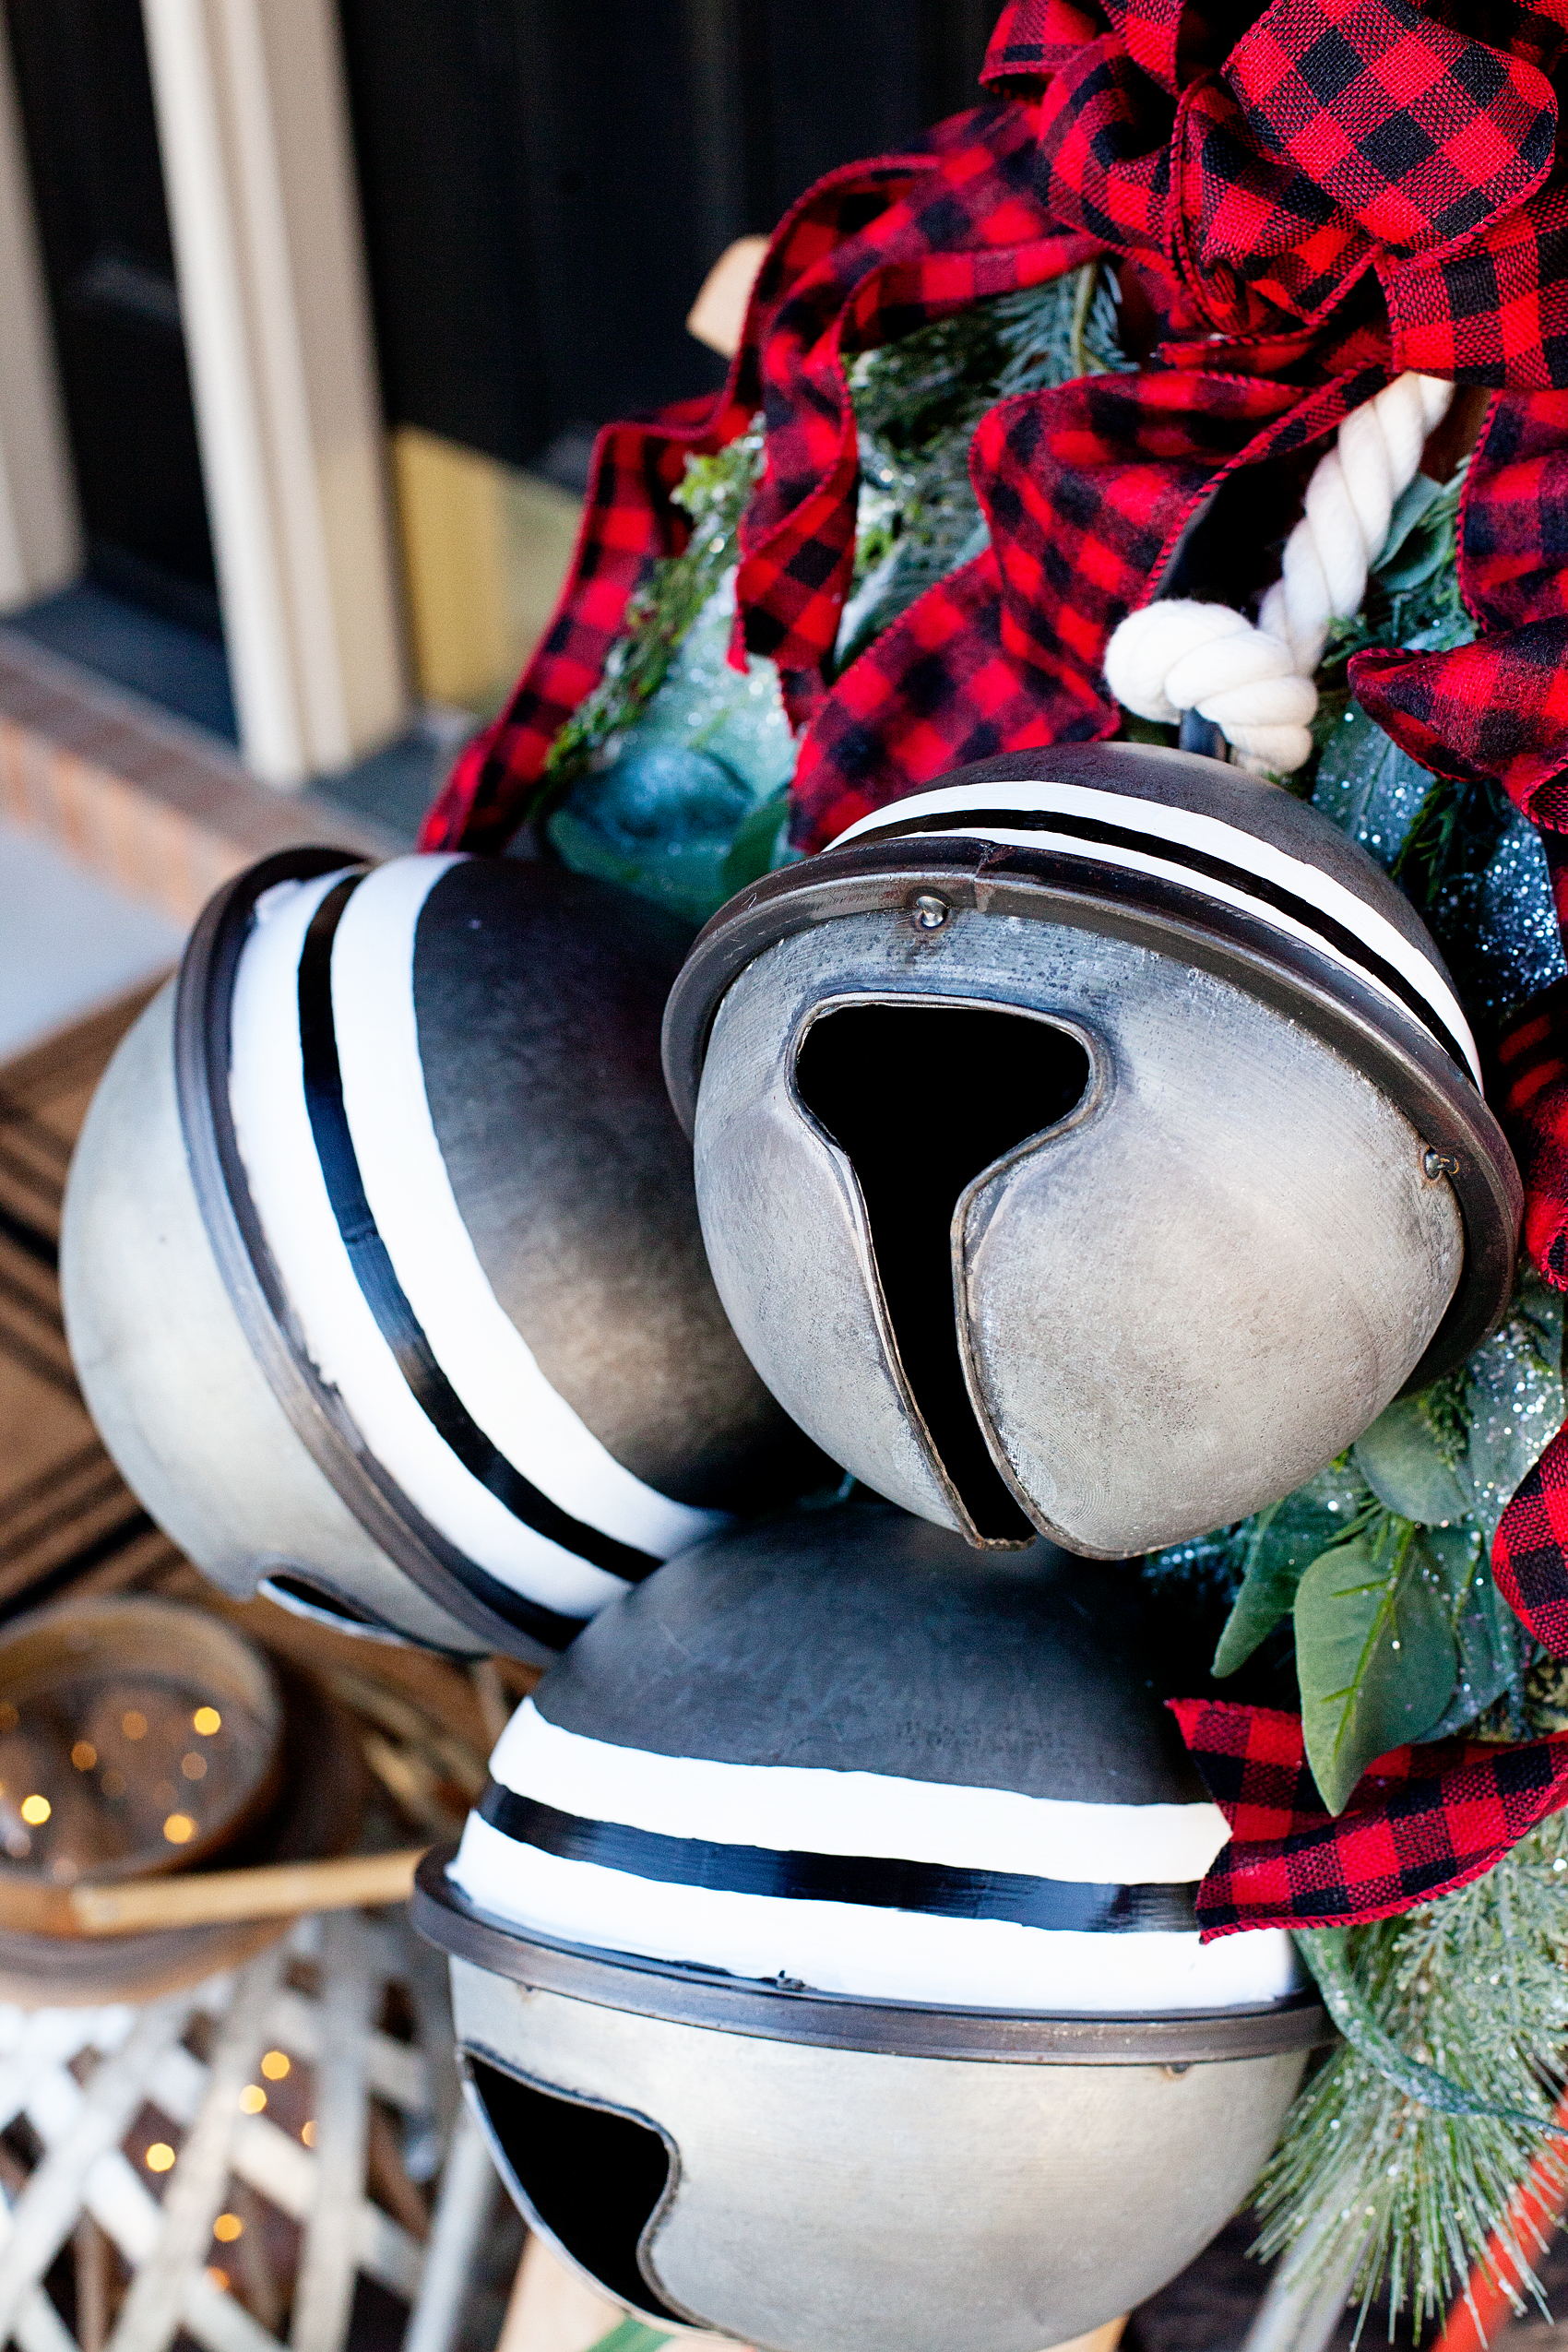 It's so easy to take a simple object and give it a little extra class. I used some Americana Decor Satin Enamels and added my own special touch to these fun bells. Come see how I transformed them just a touch but added some real WOW factor.